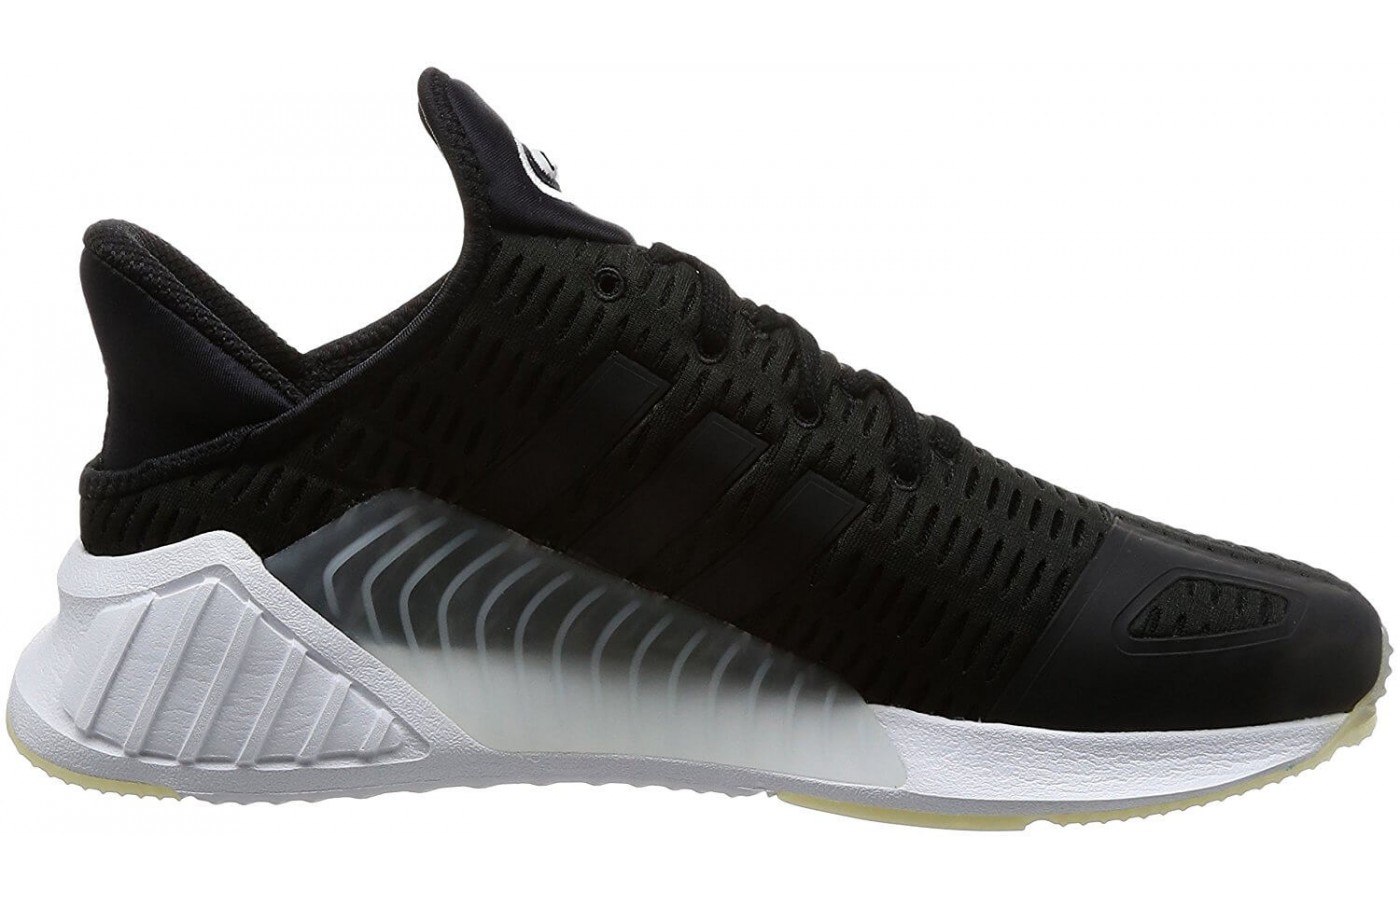 The ClimaCool 02.17 is a stylish shoe